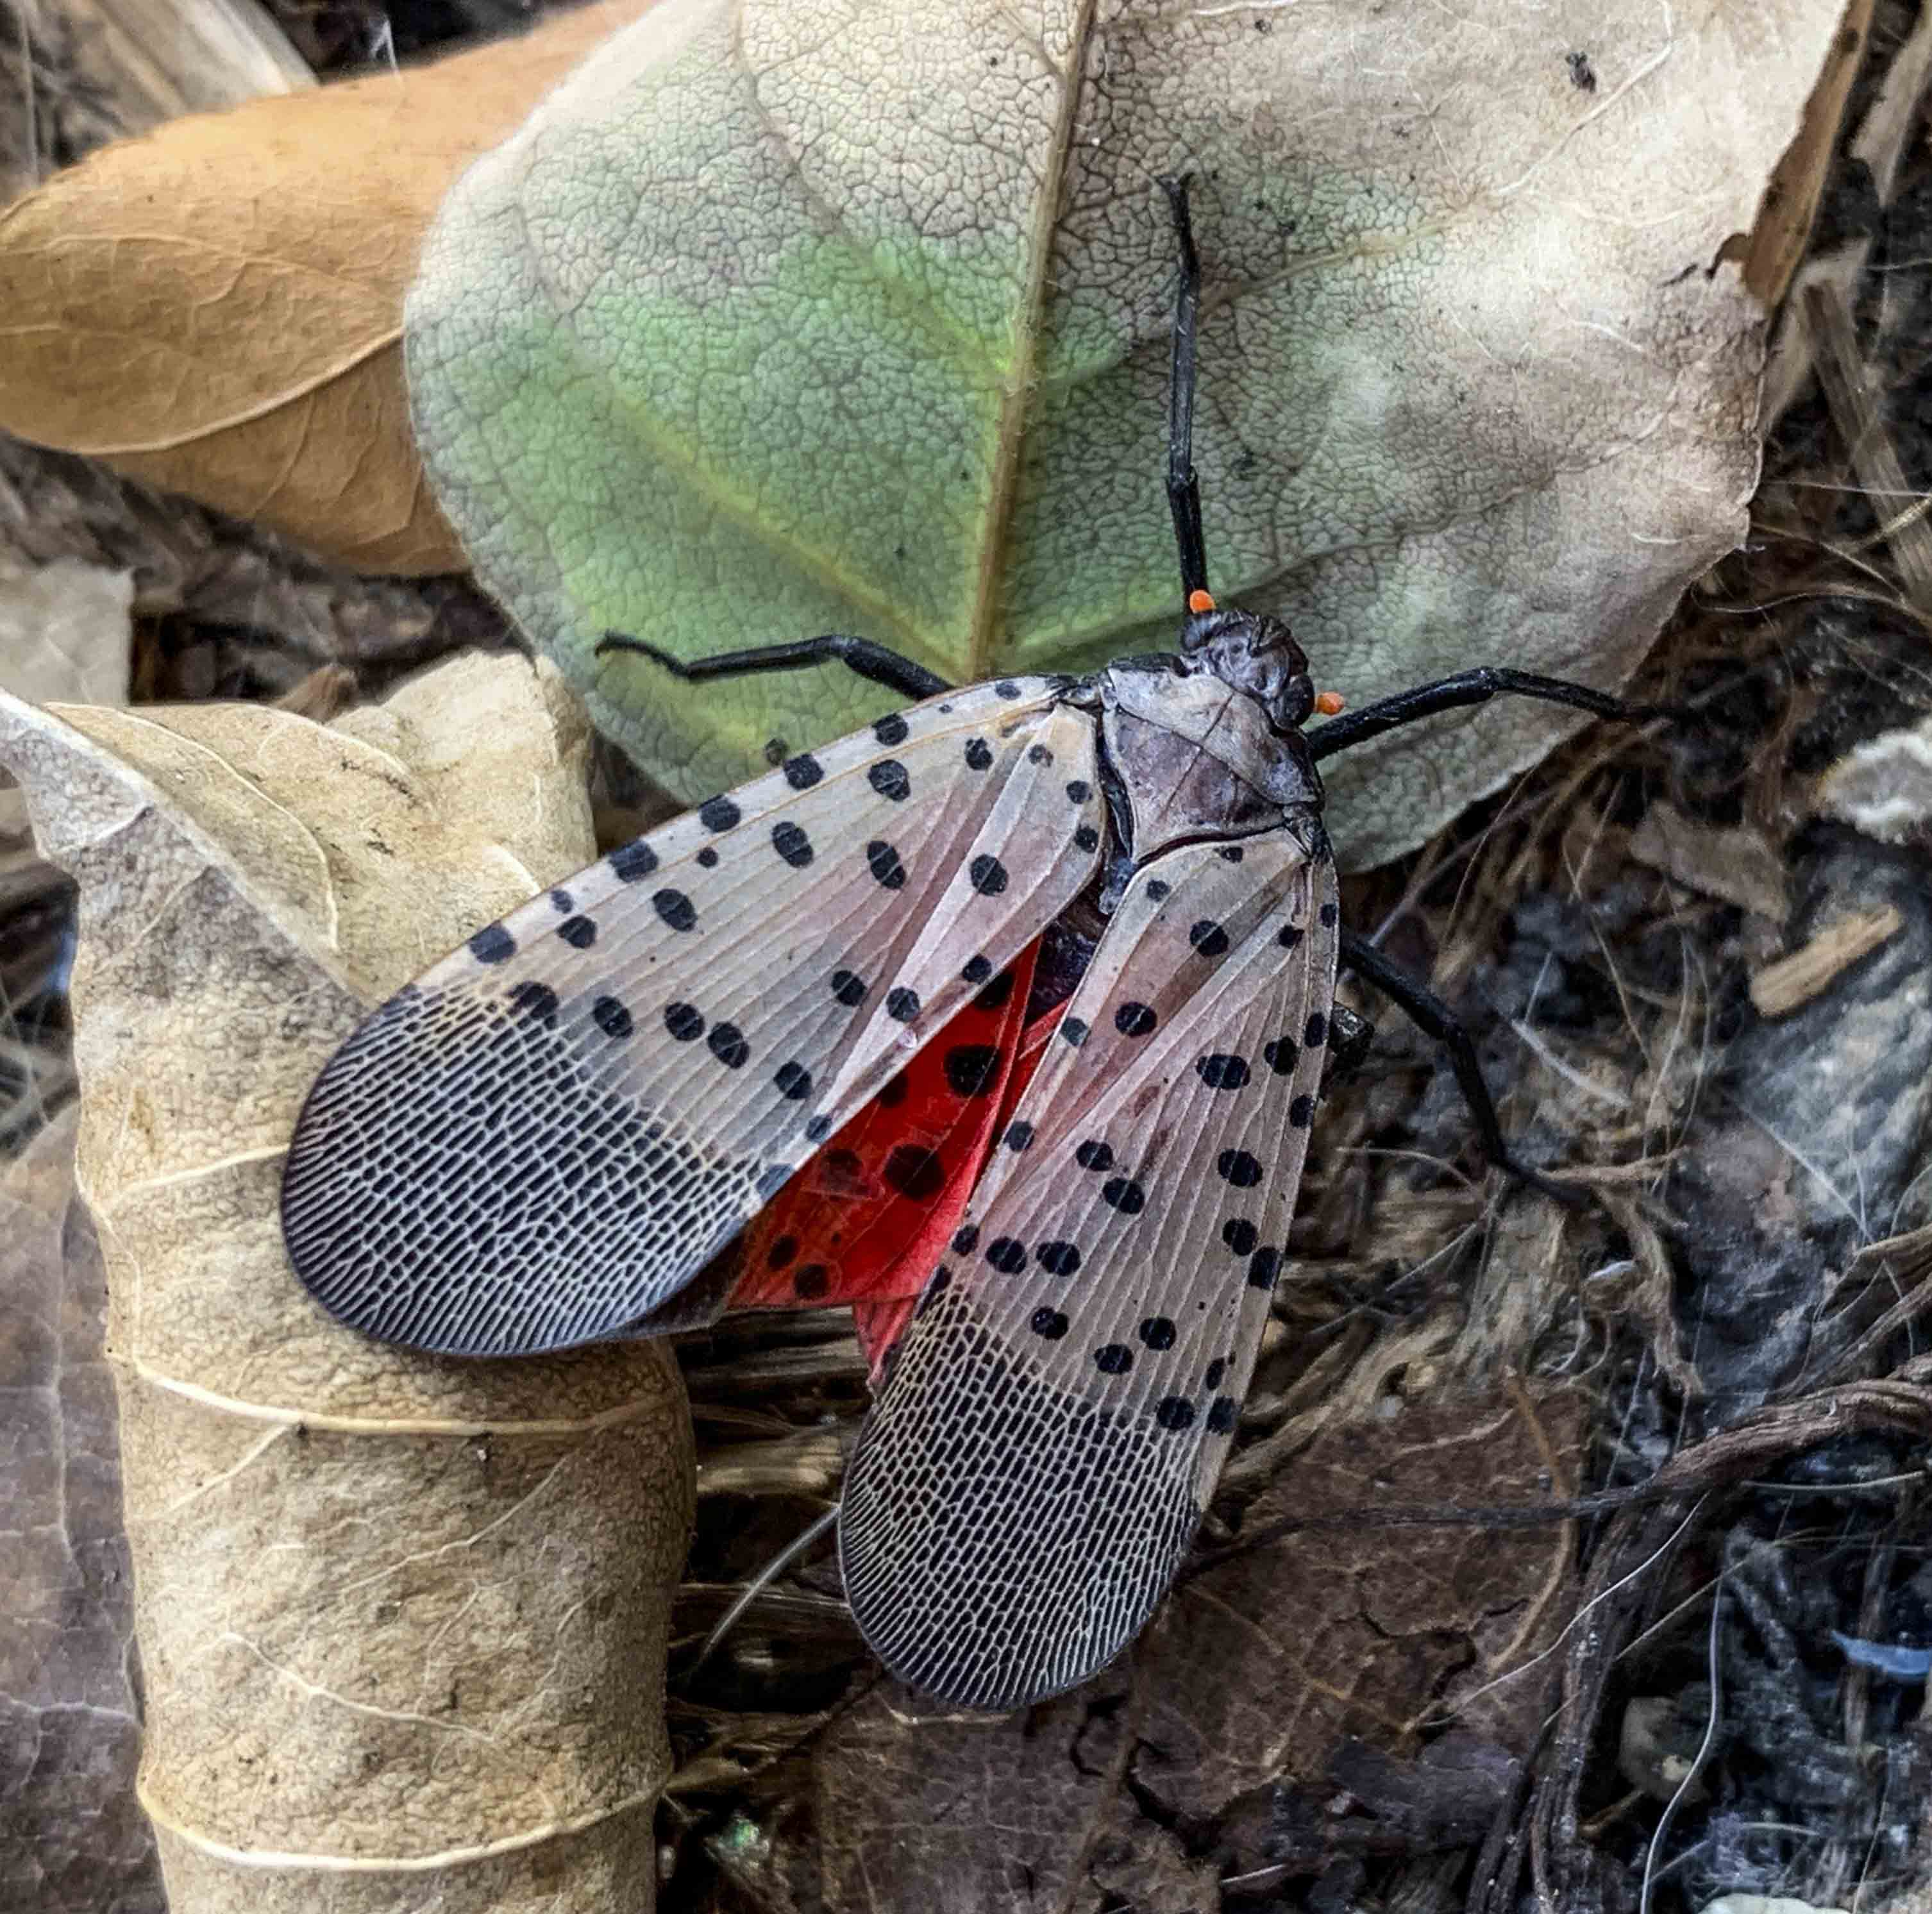 Spotted lanternfly (2), journal of wild culture, ©051620